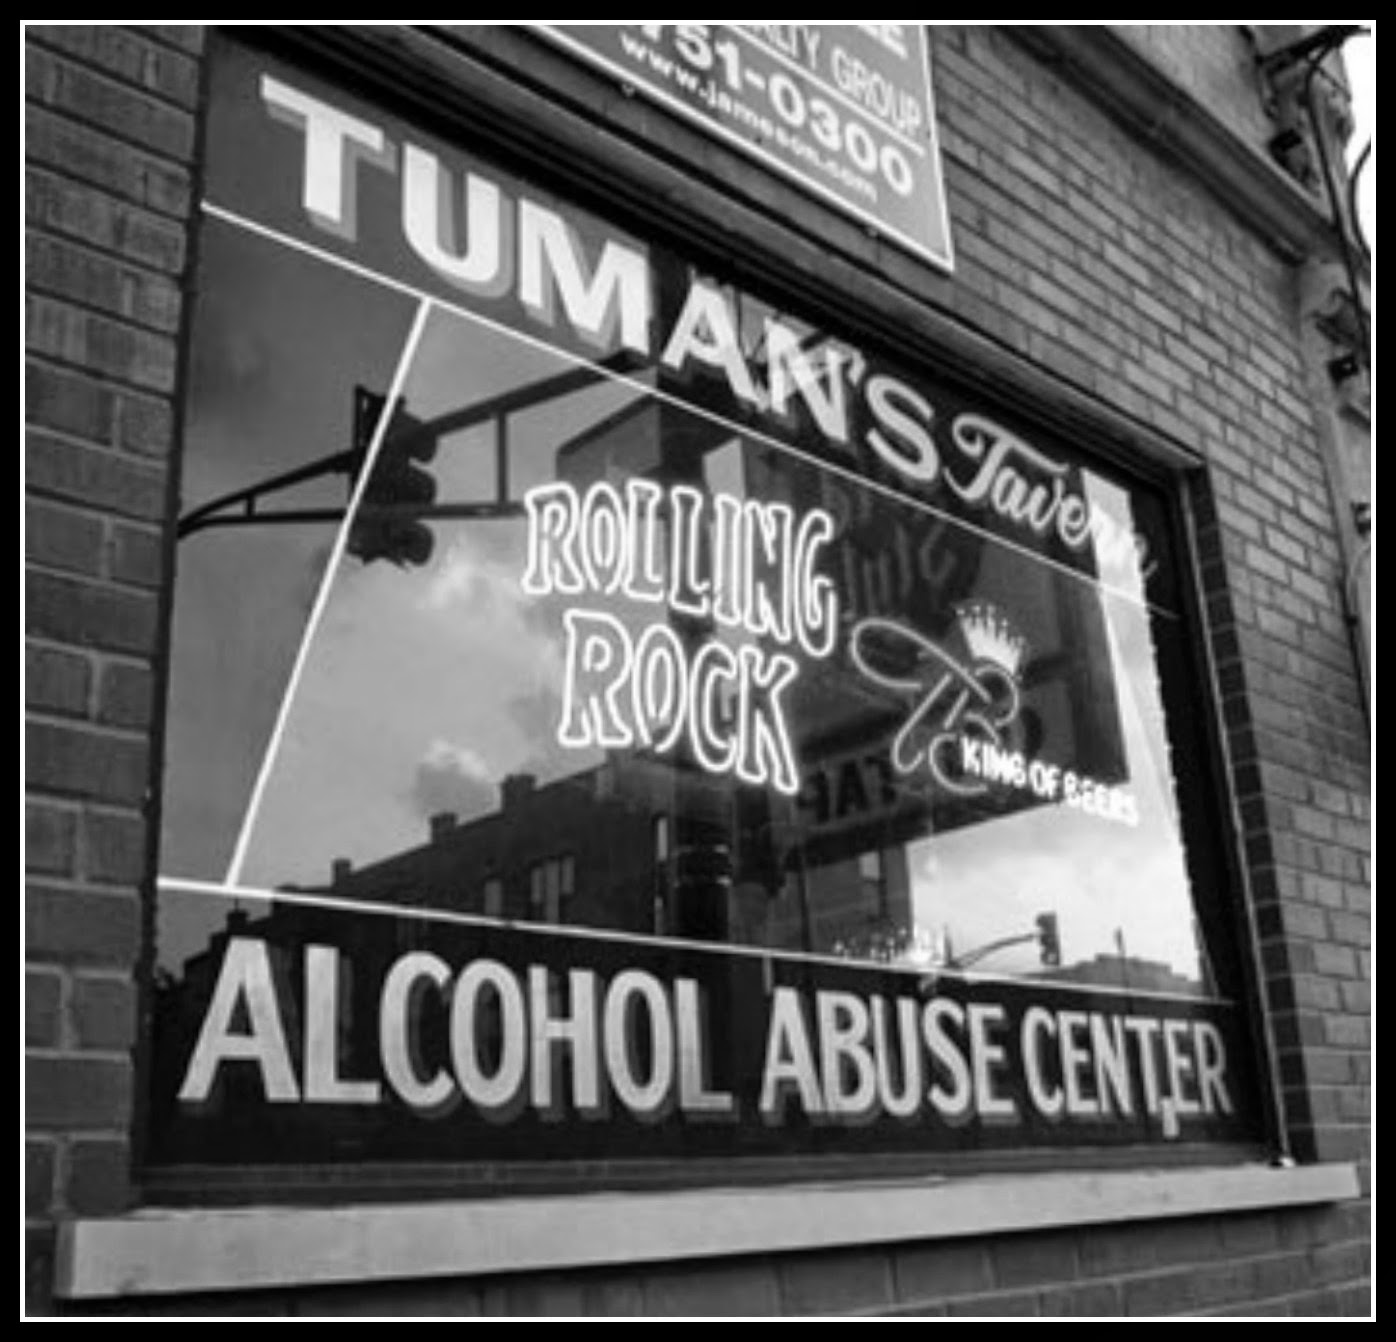 Alcohol Abuse Center